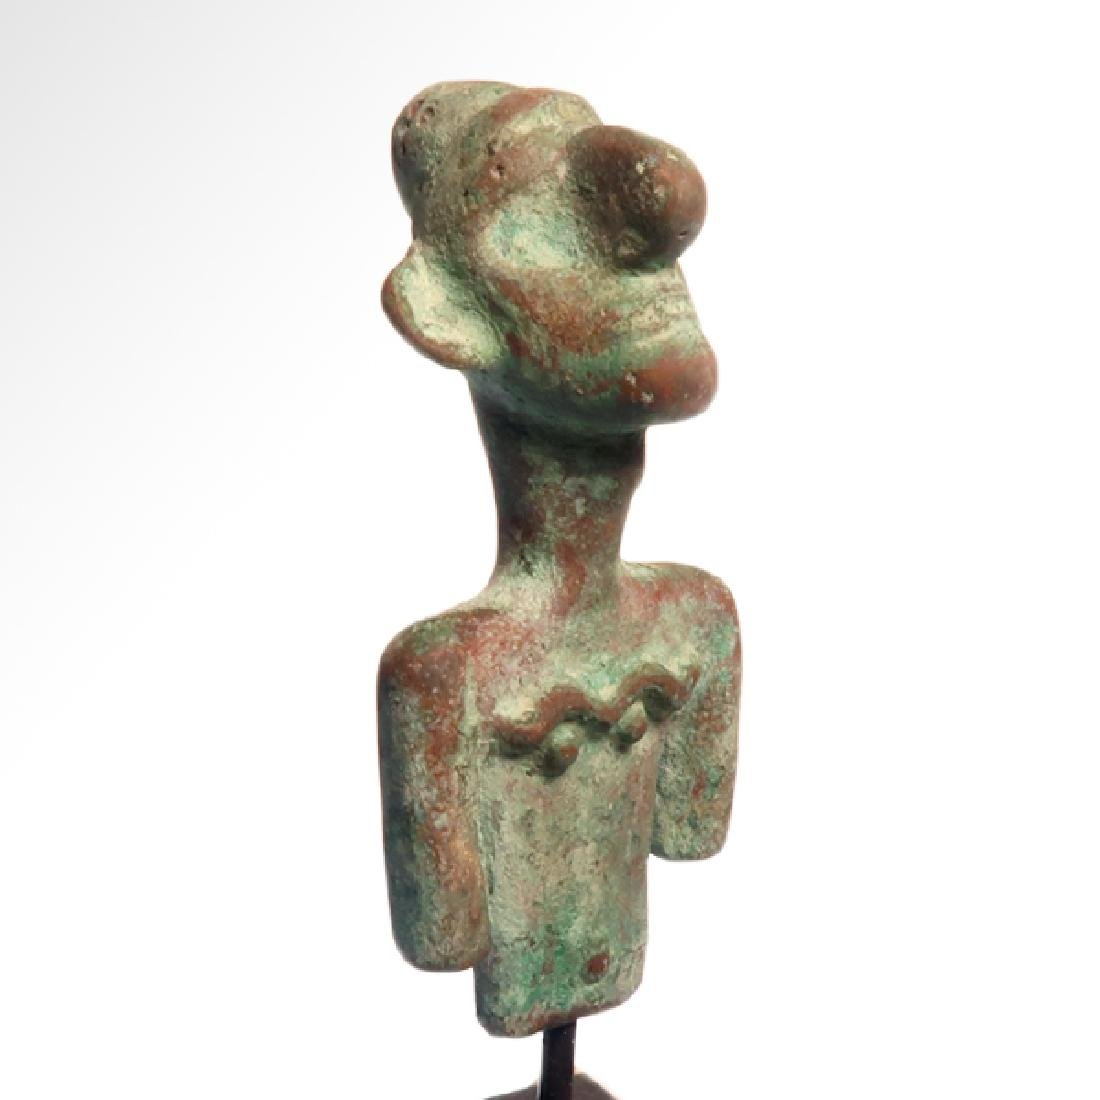 Canaanite Bust of a Deity, c. 2nd Millennium BC - 4